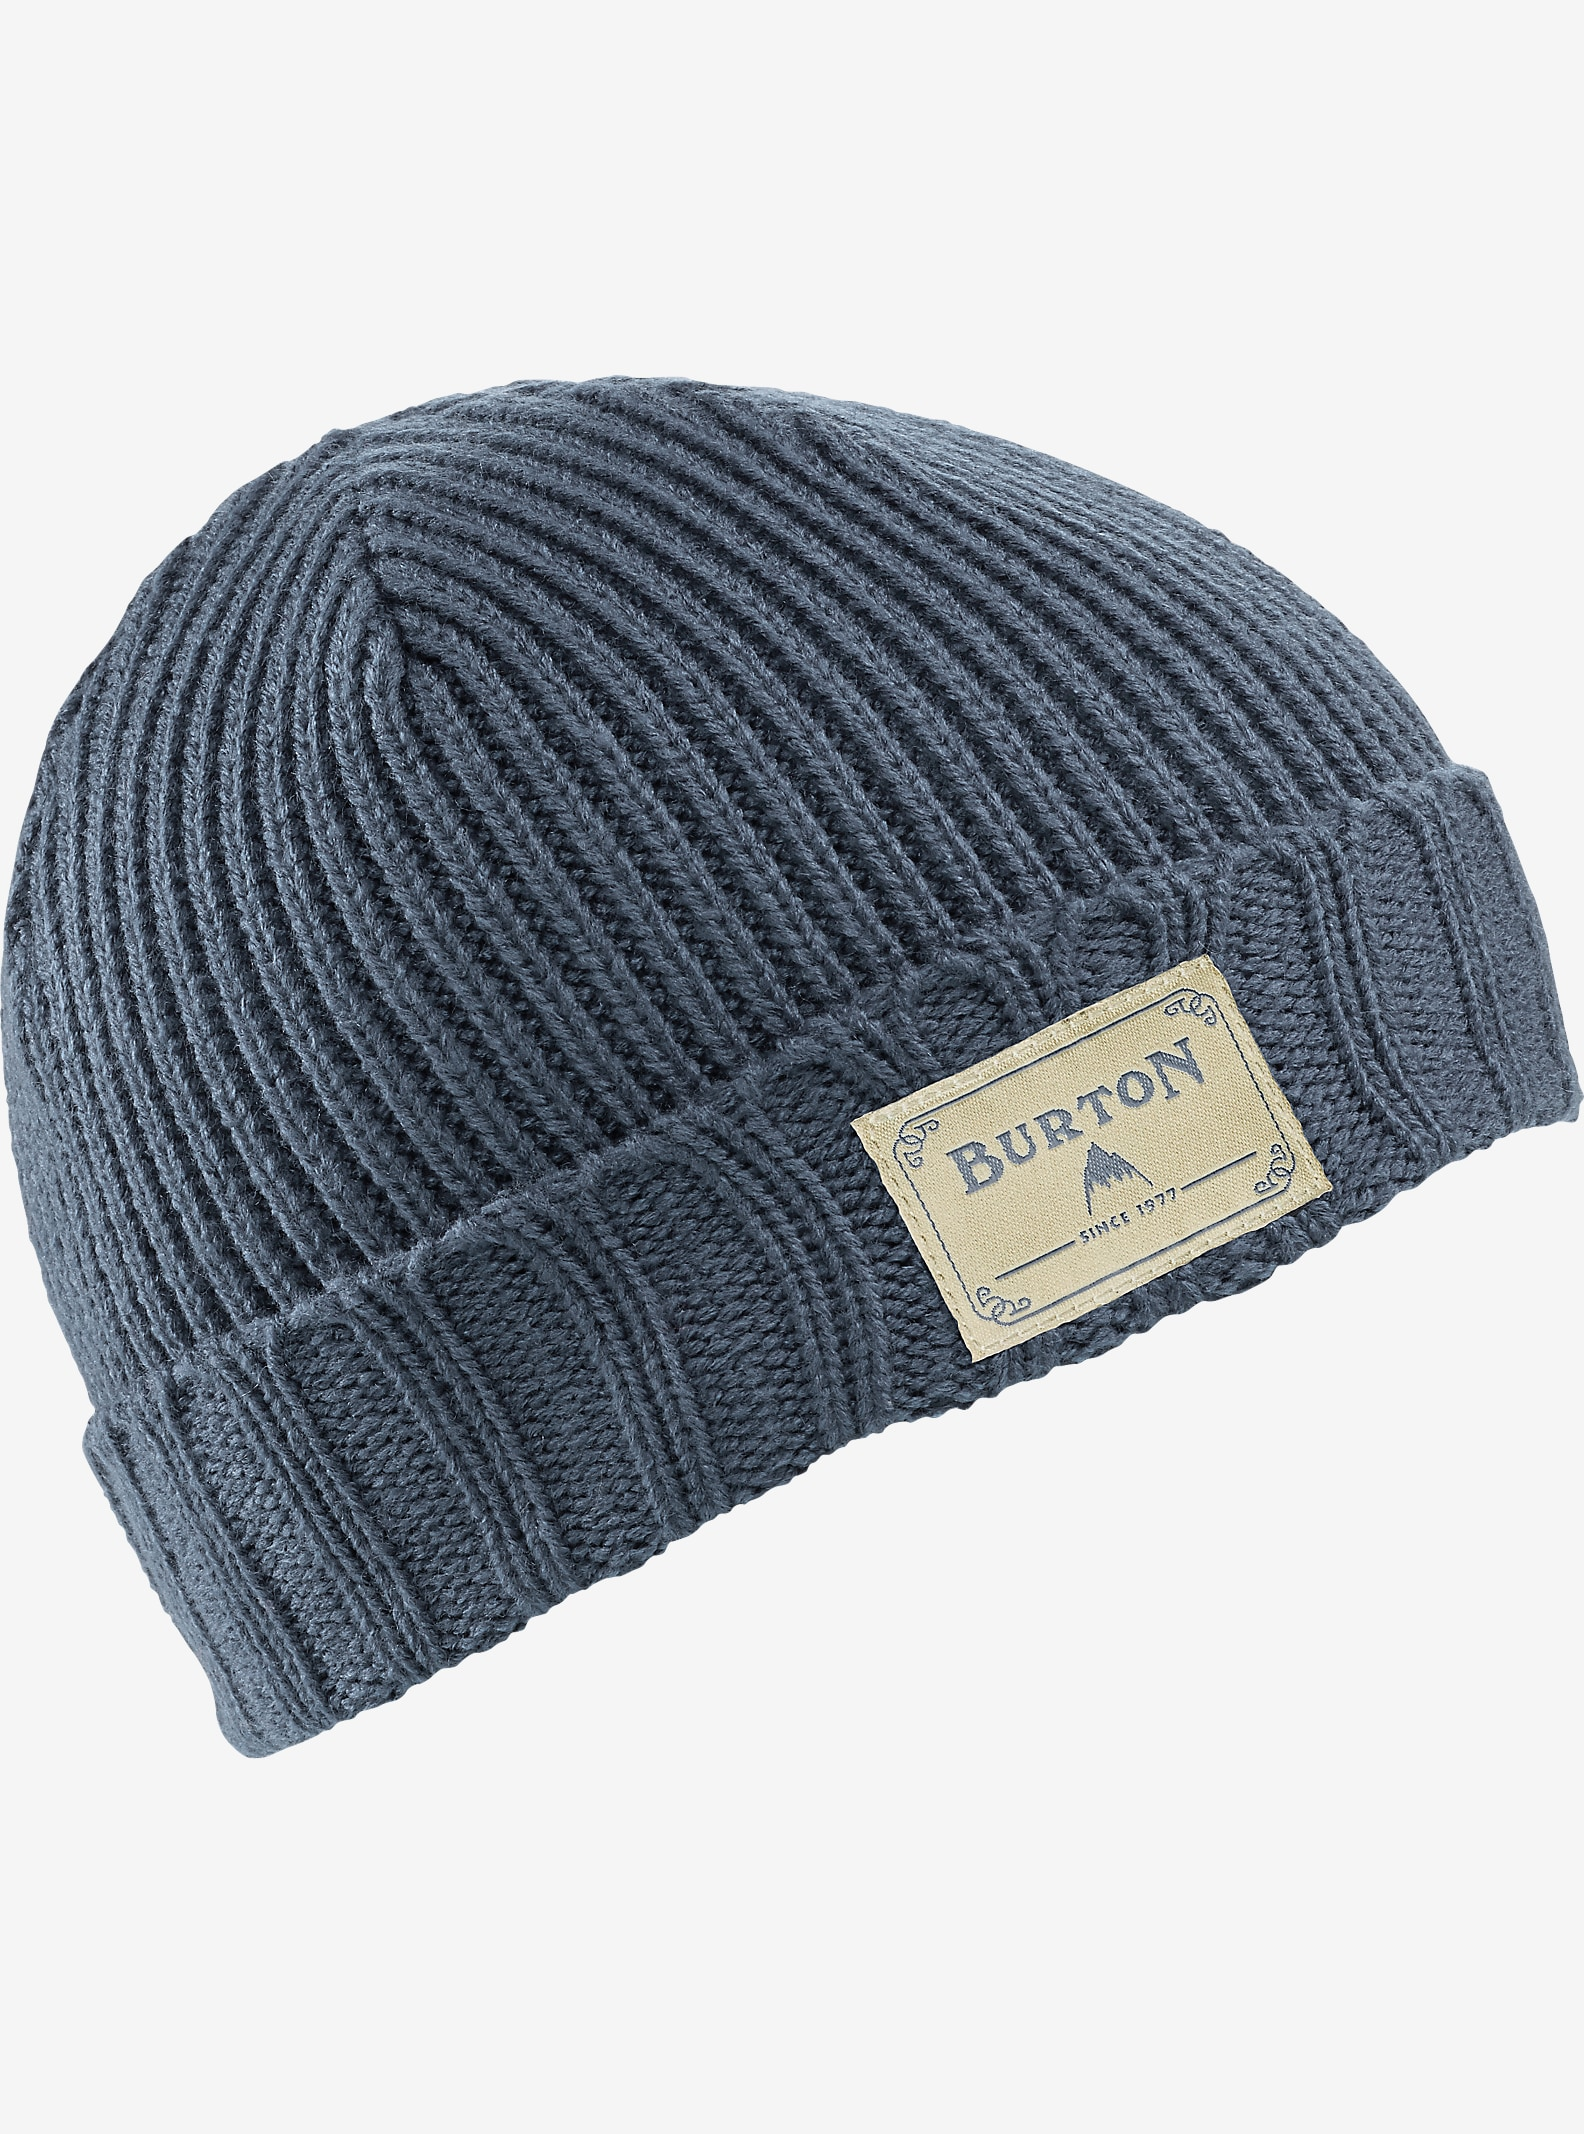 Burton Boys' Gringo Beanie shown in Washed Blue